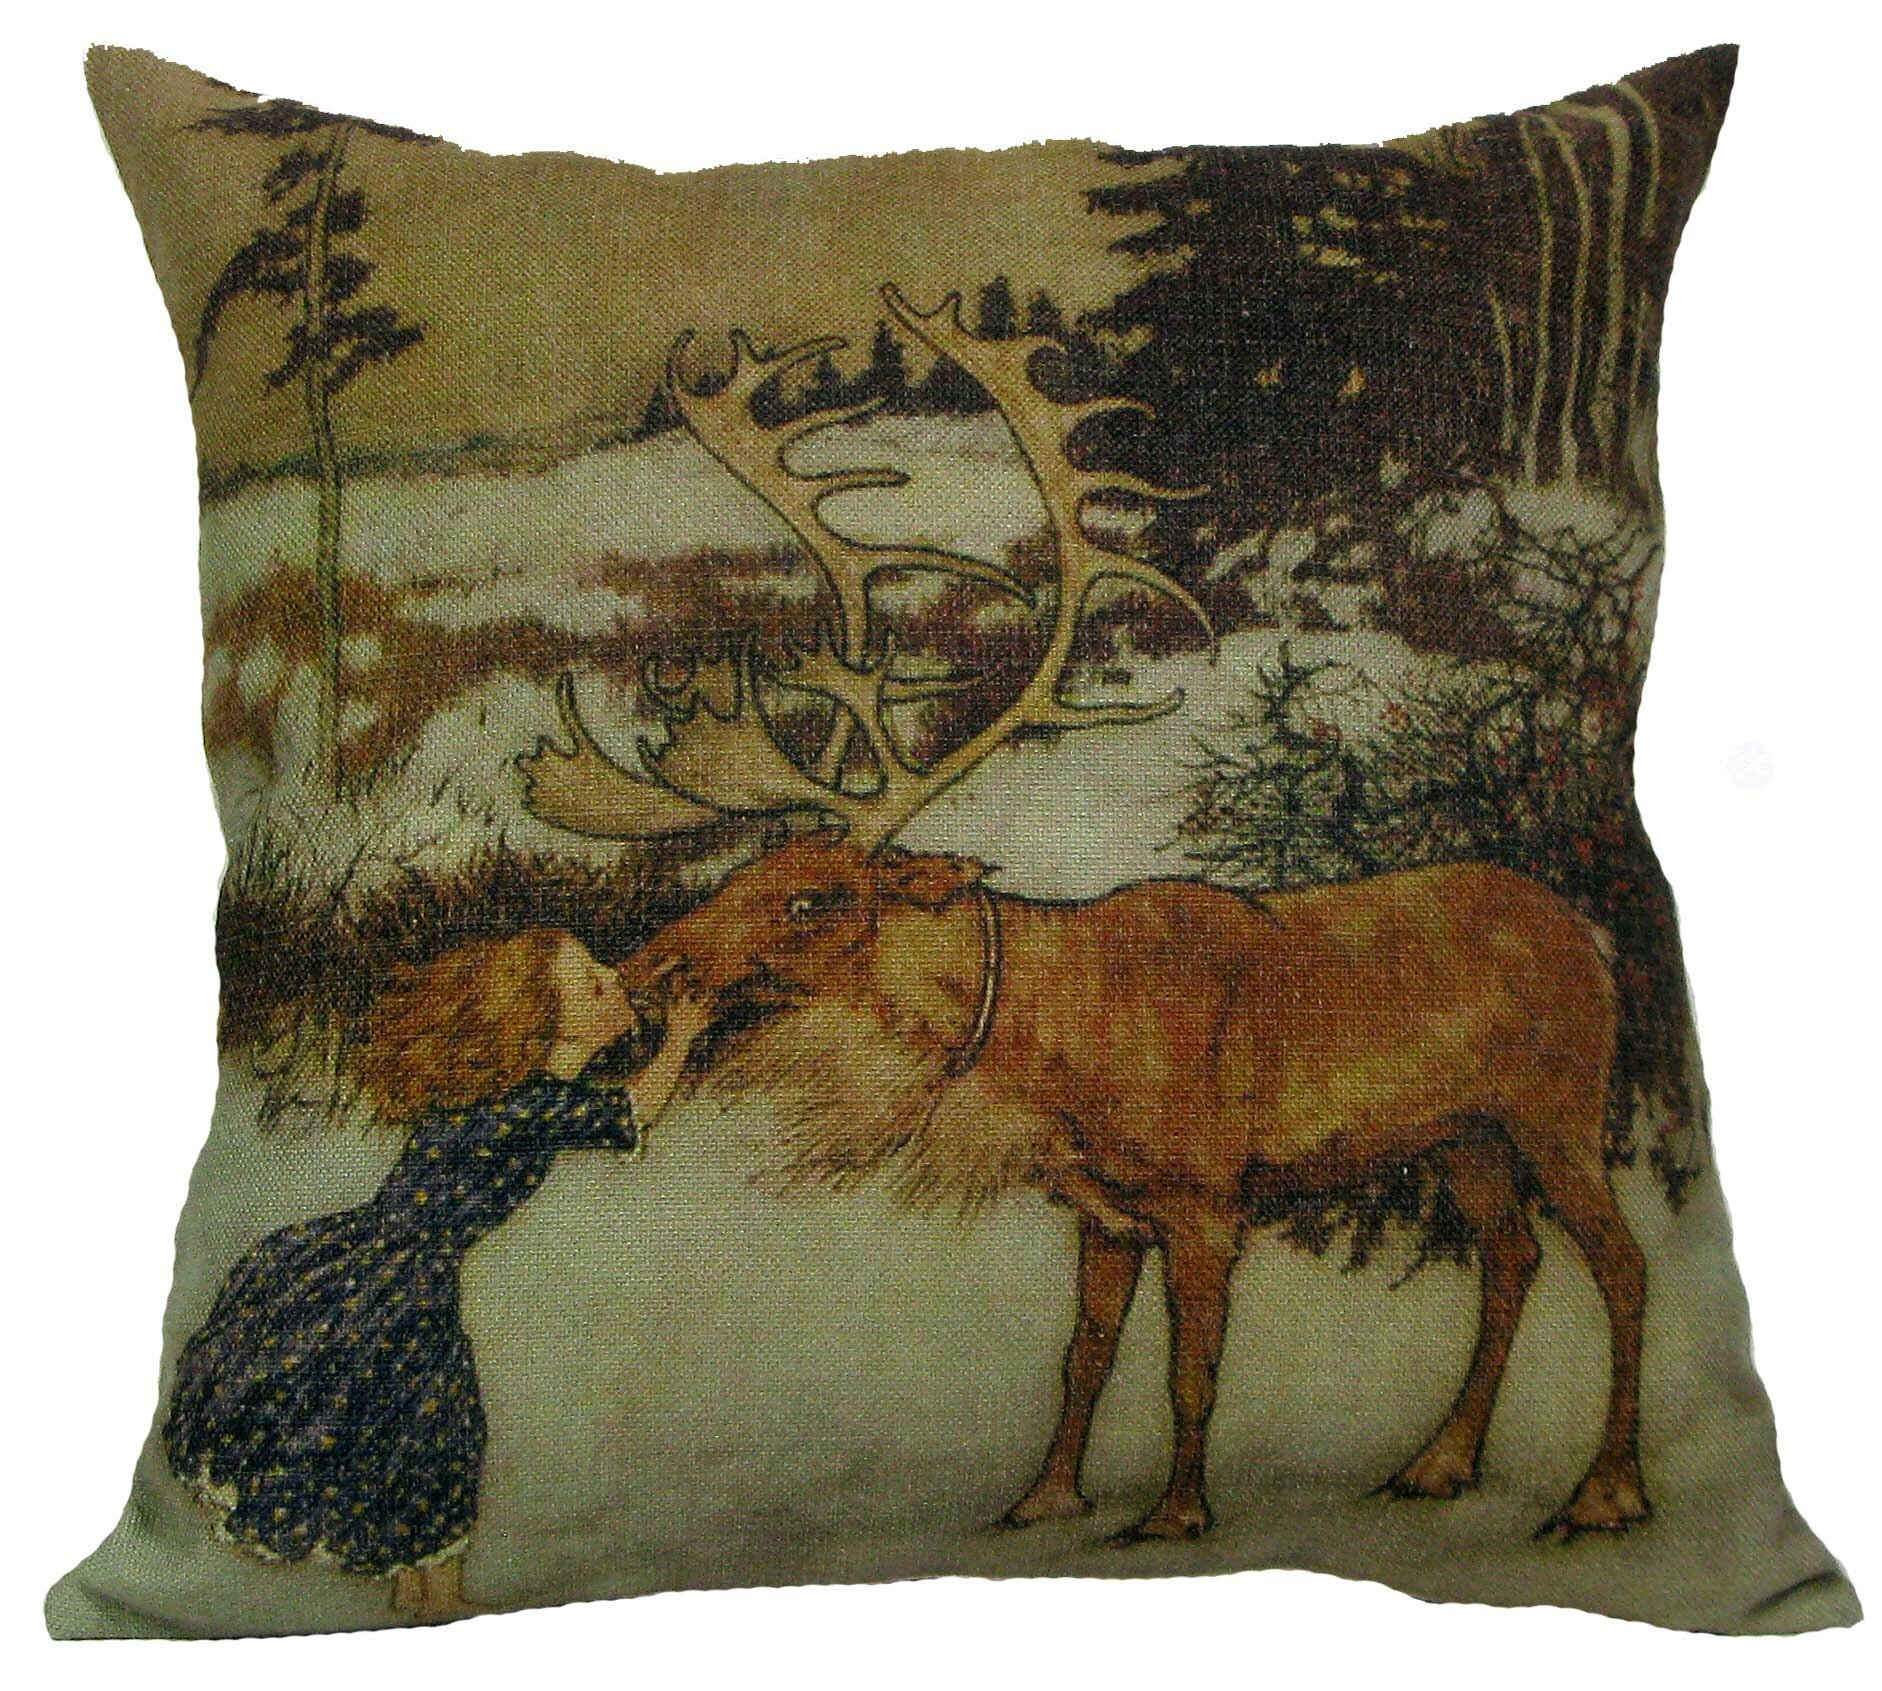 The Holiday Aisle Lilie Gerta And Reindeer Pillow Cover Reviews Wayfair